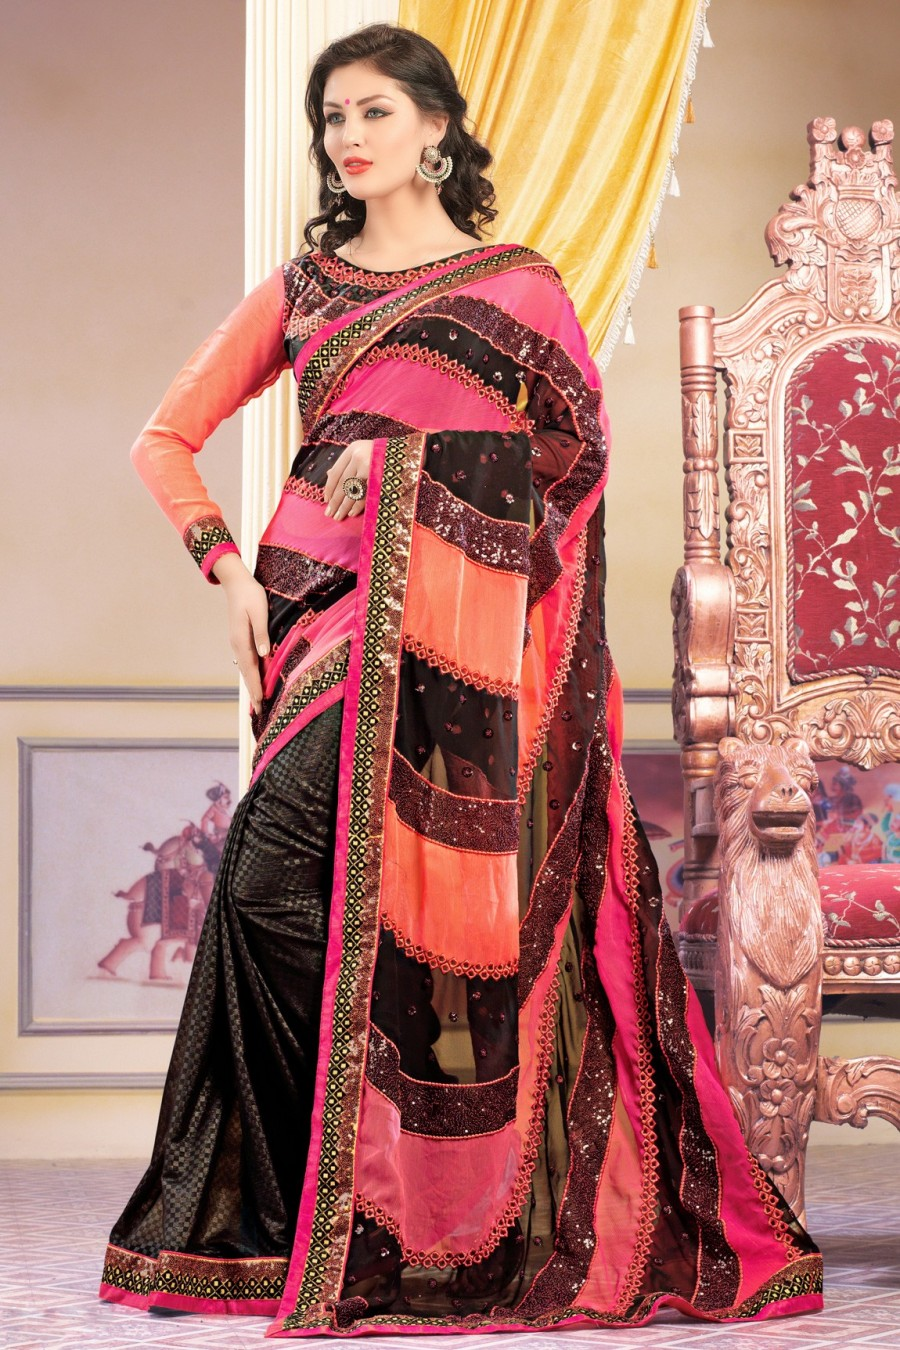 9998b4e6c0 Buy Black Georgette Embroidered Saree with Dupioni Blouse | 504500